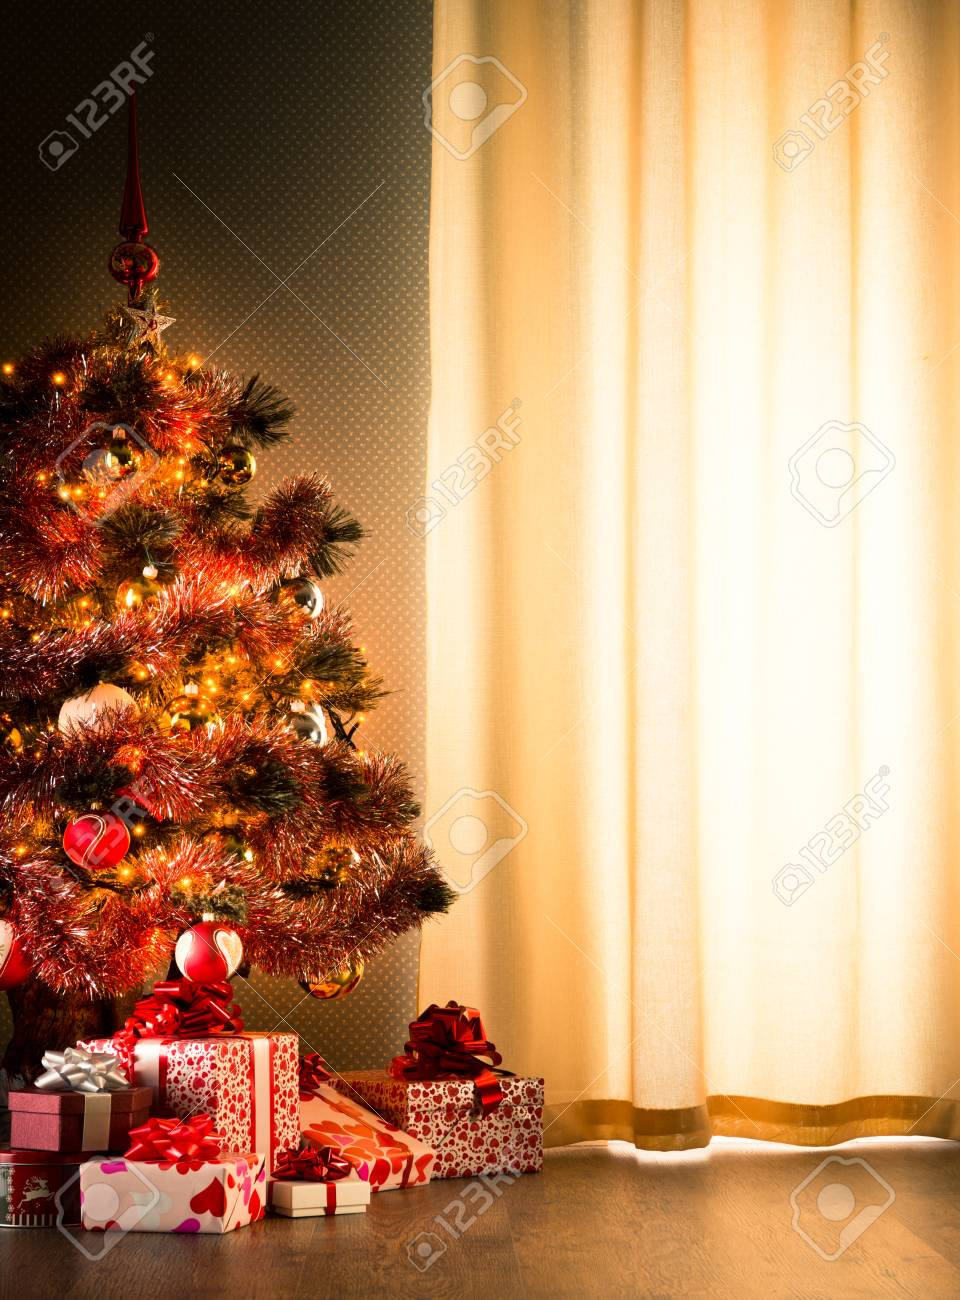 Colorful Christmas Tree With Red And White Gift Boxes On Elegant Stock Photo Picture And Royalty Free Image Image 34034758